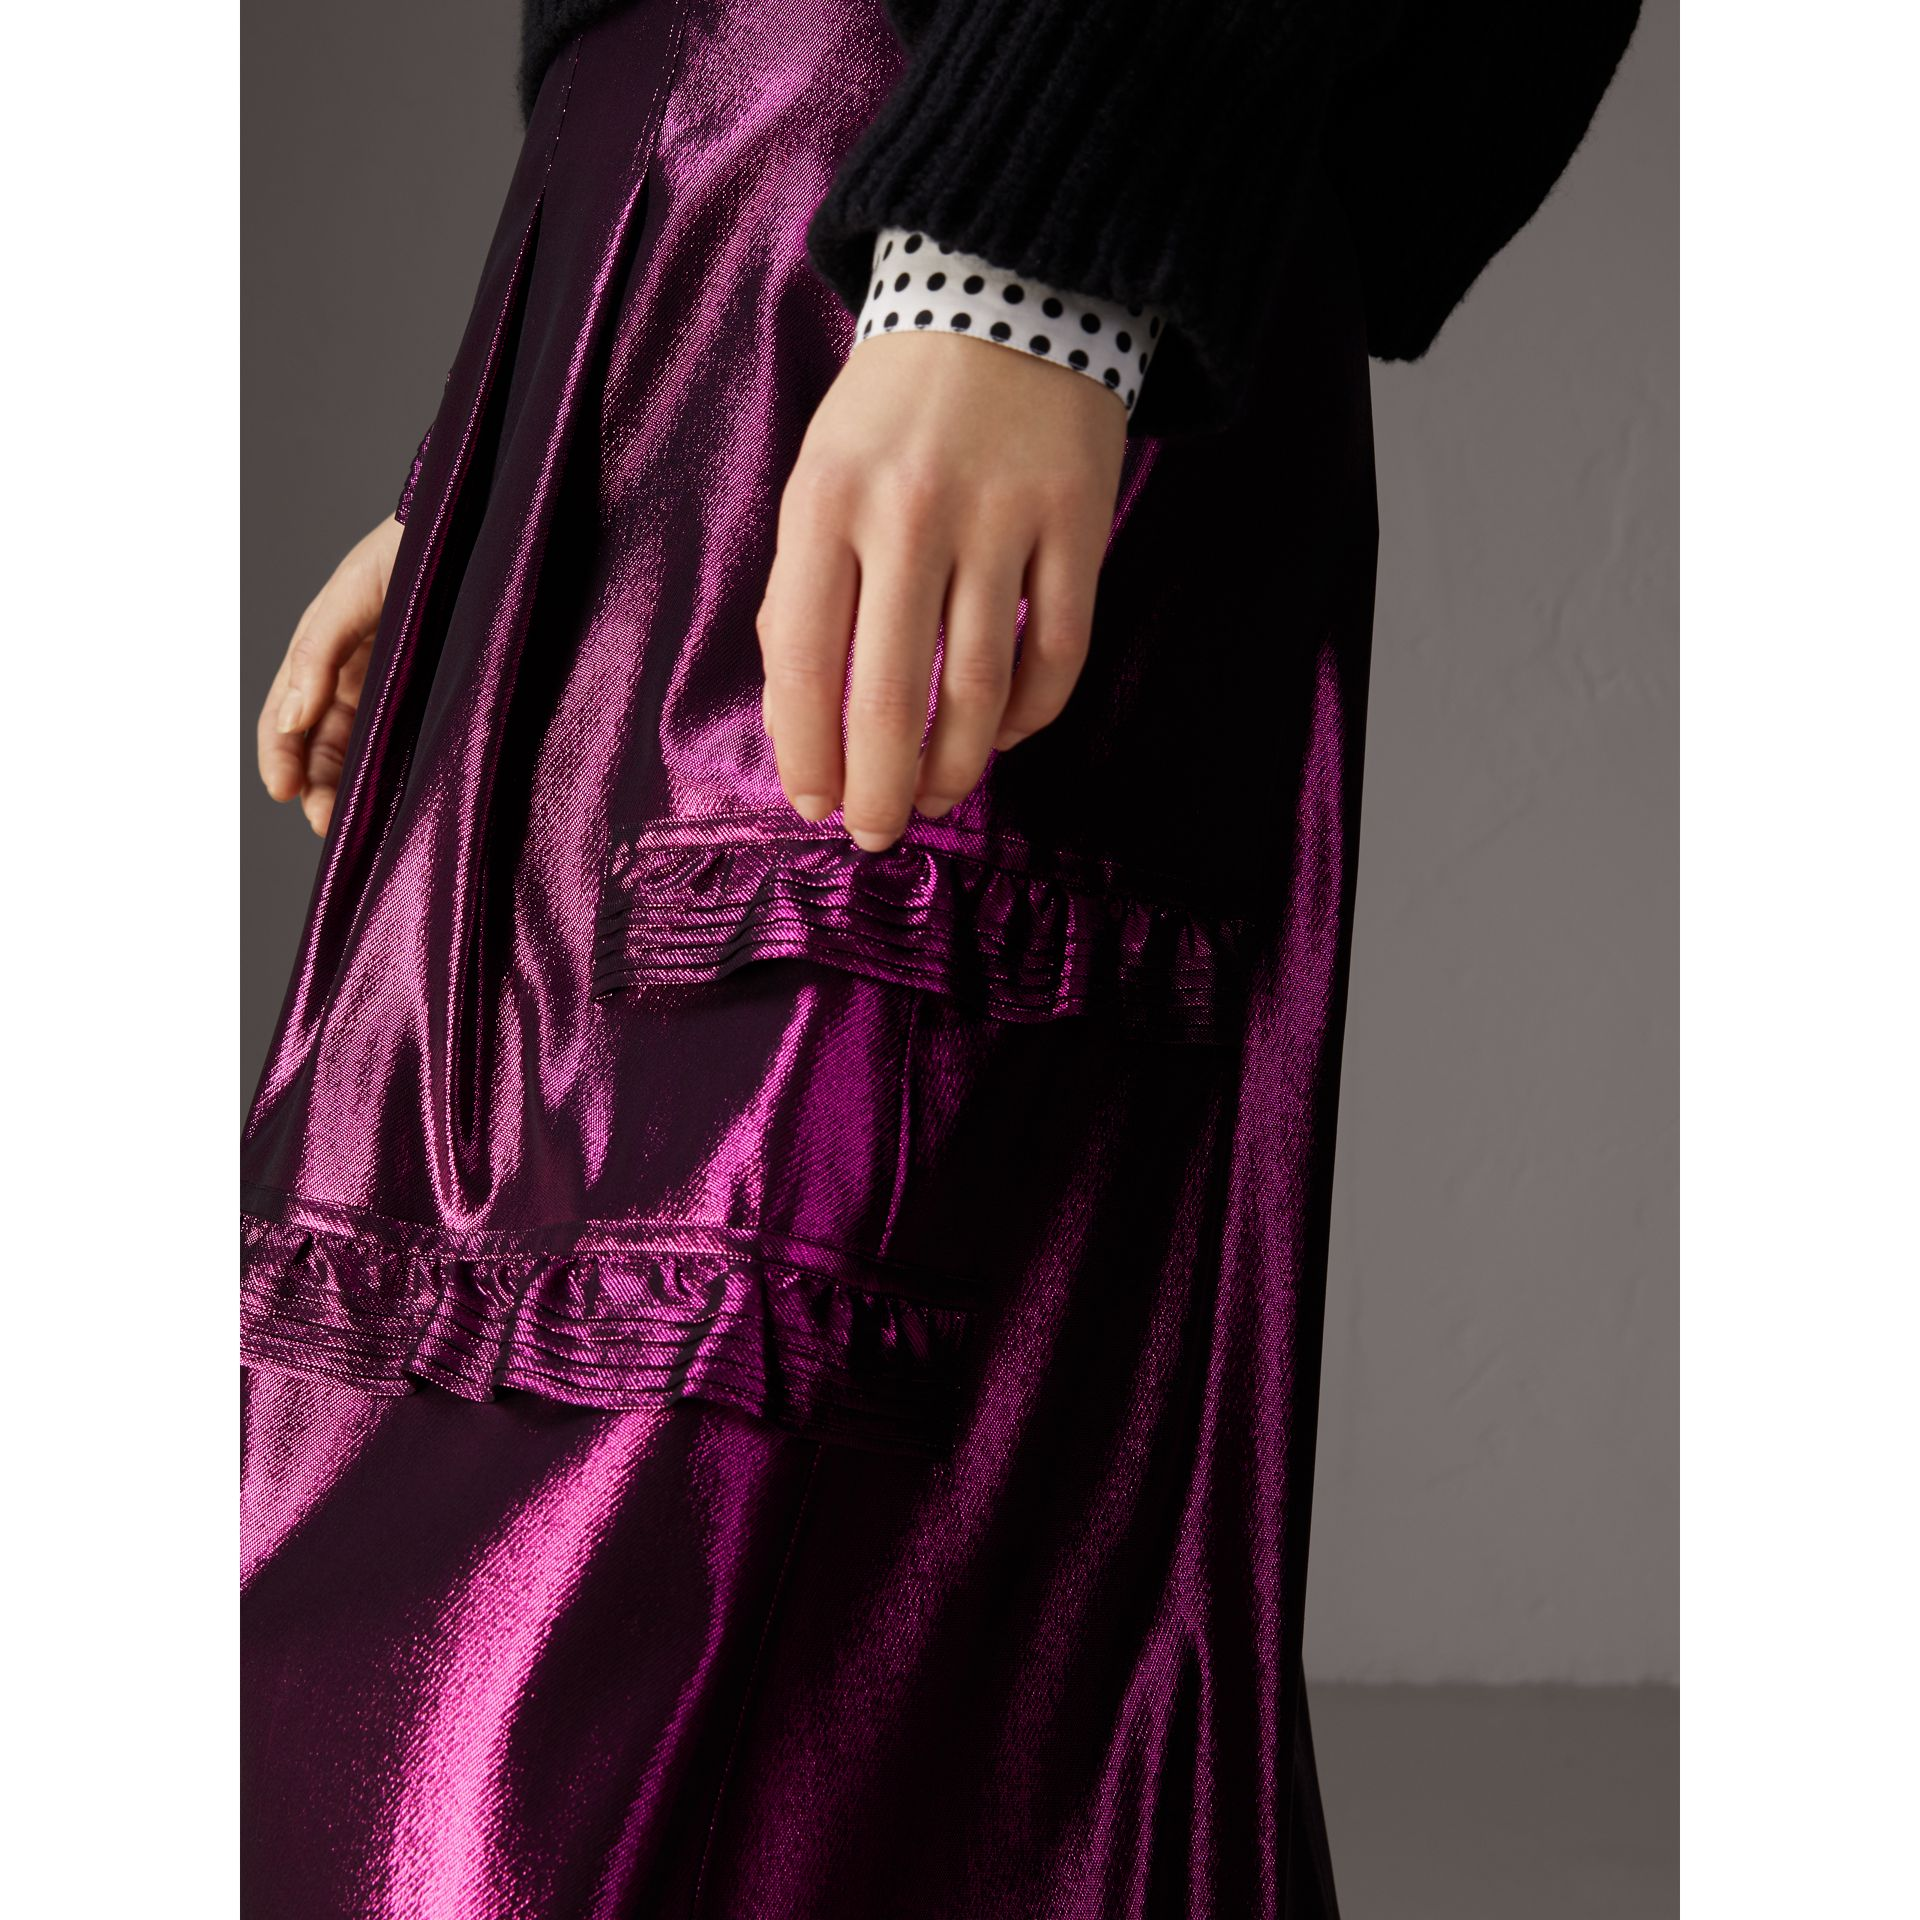 Ruffle Detail Lamé Skirt in Bright Fuchsia - Women | Burberry United Kingdom - gallery image 1